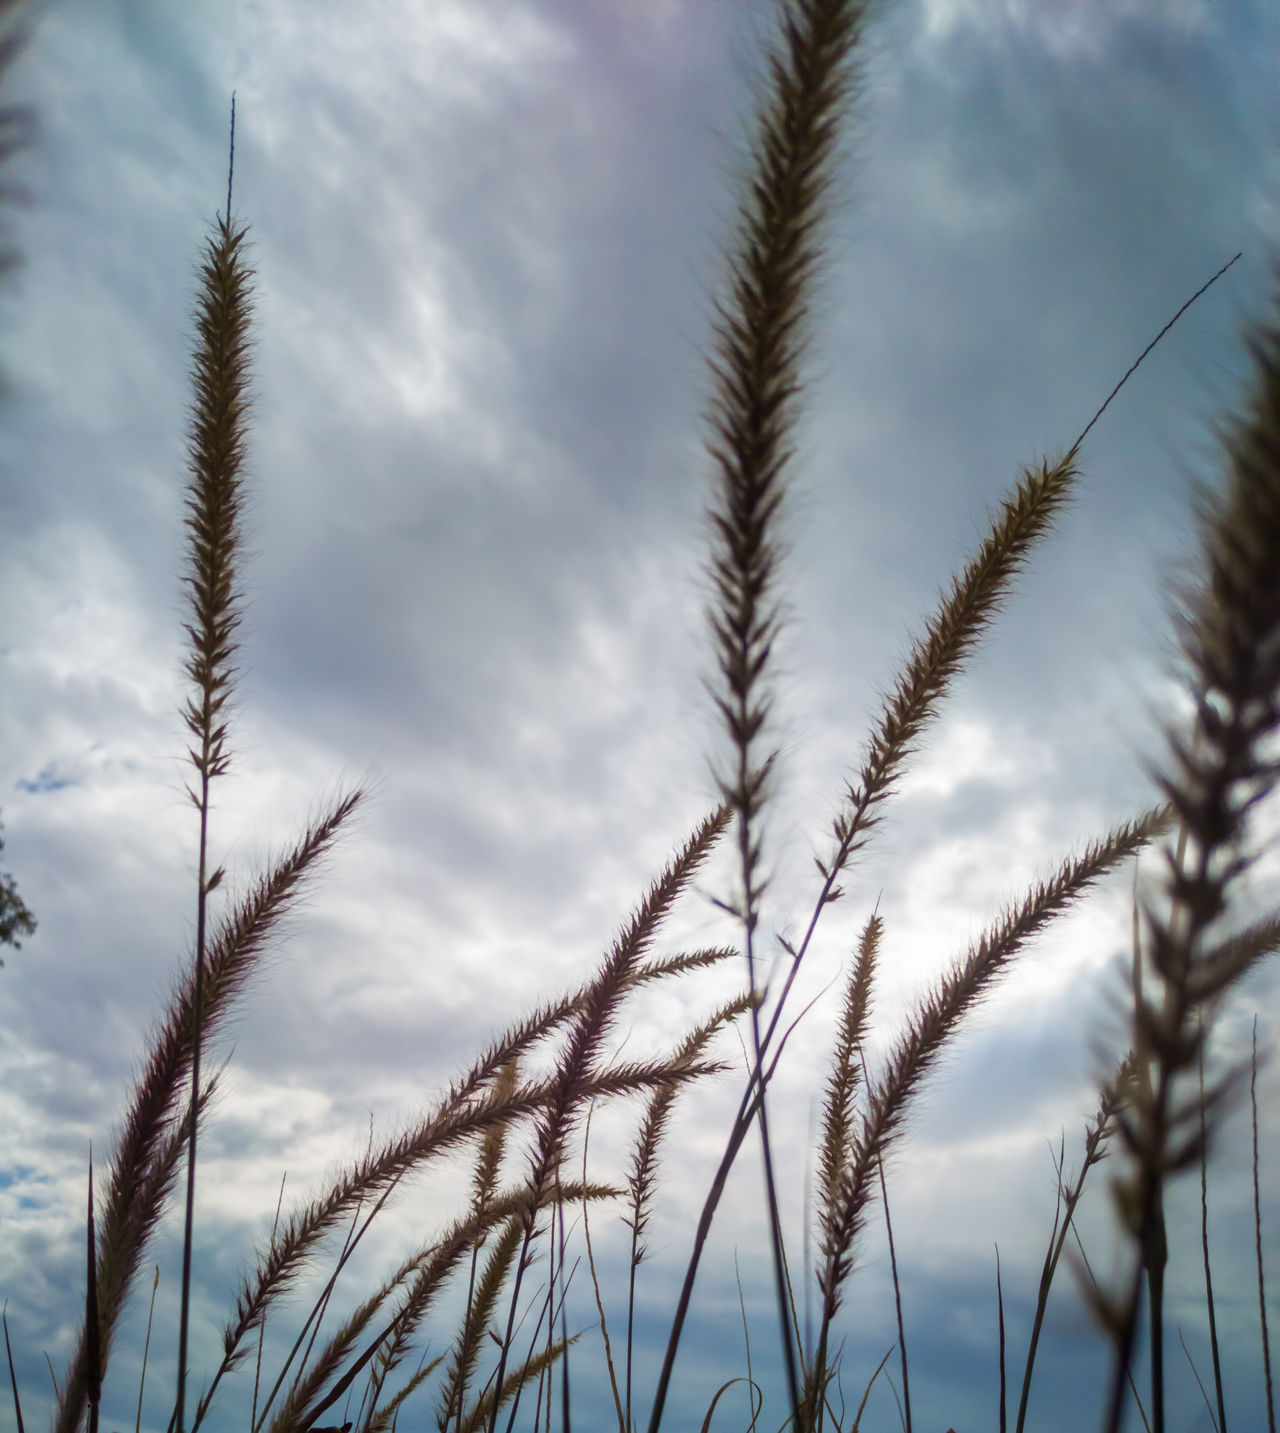 Nature Plant No People Outdoors Close-up Growth Rural Scene Timothy Grass Cloud - Sky Sky Day